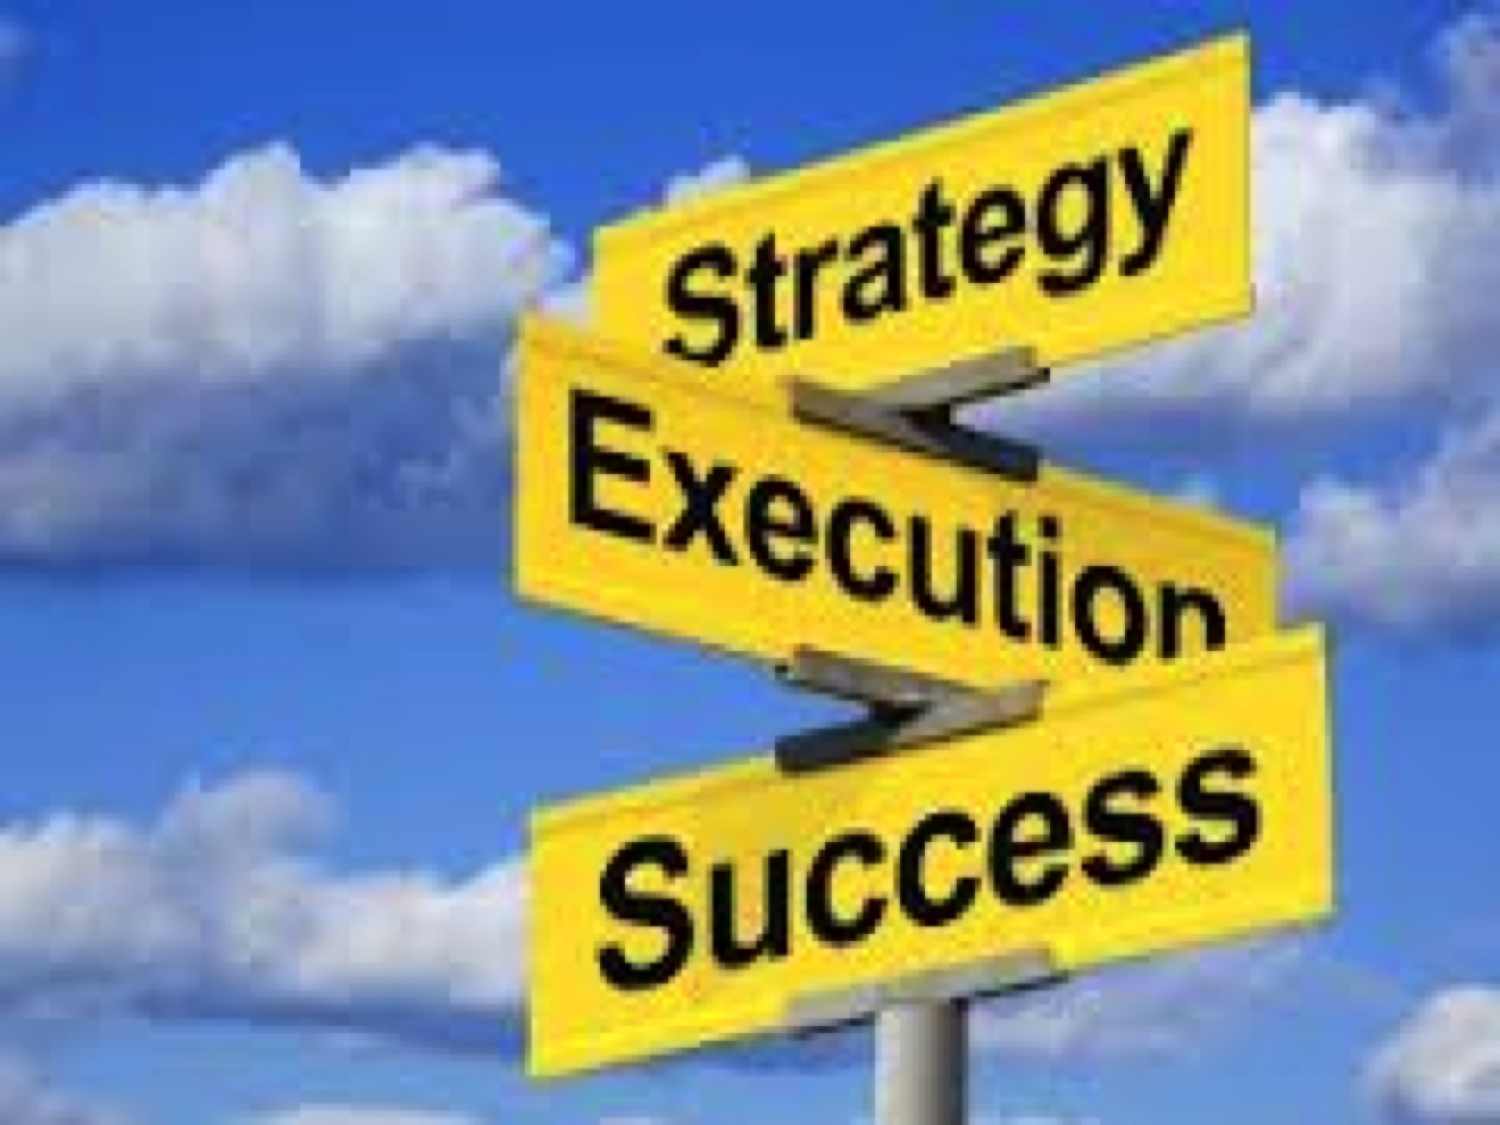 strategy - execution - success